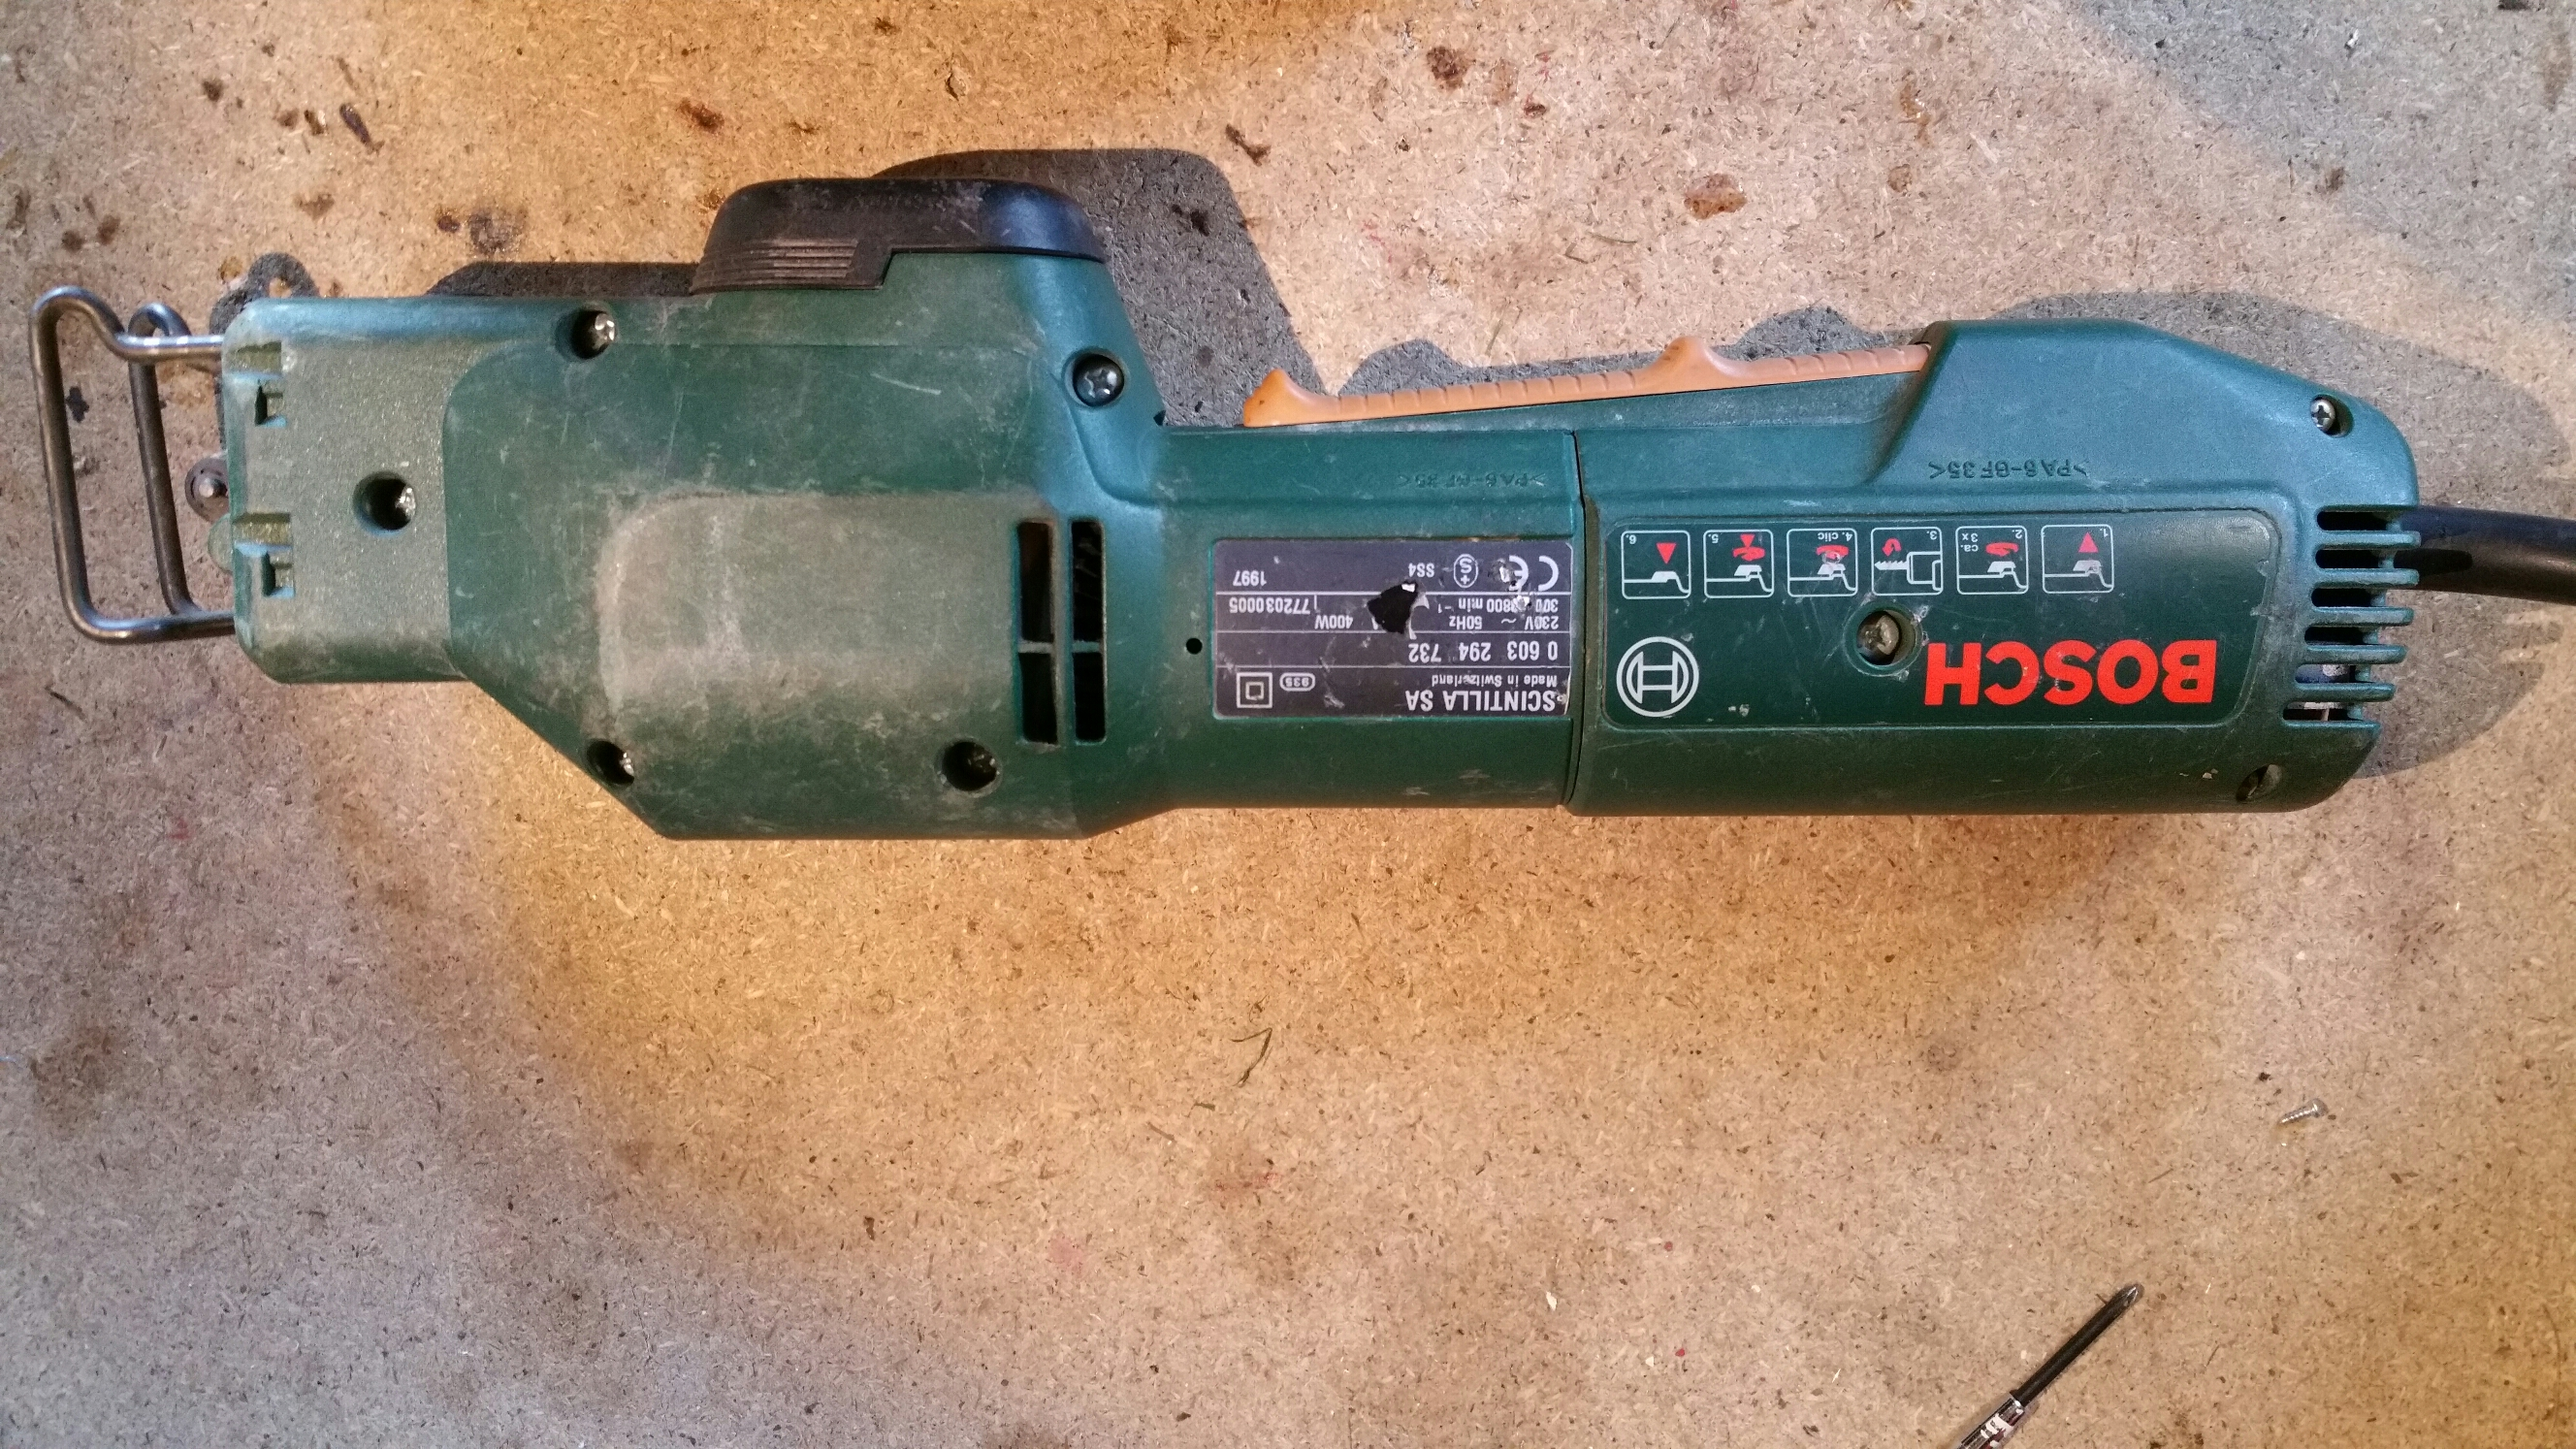 Electrical saw from Bosch teardown